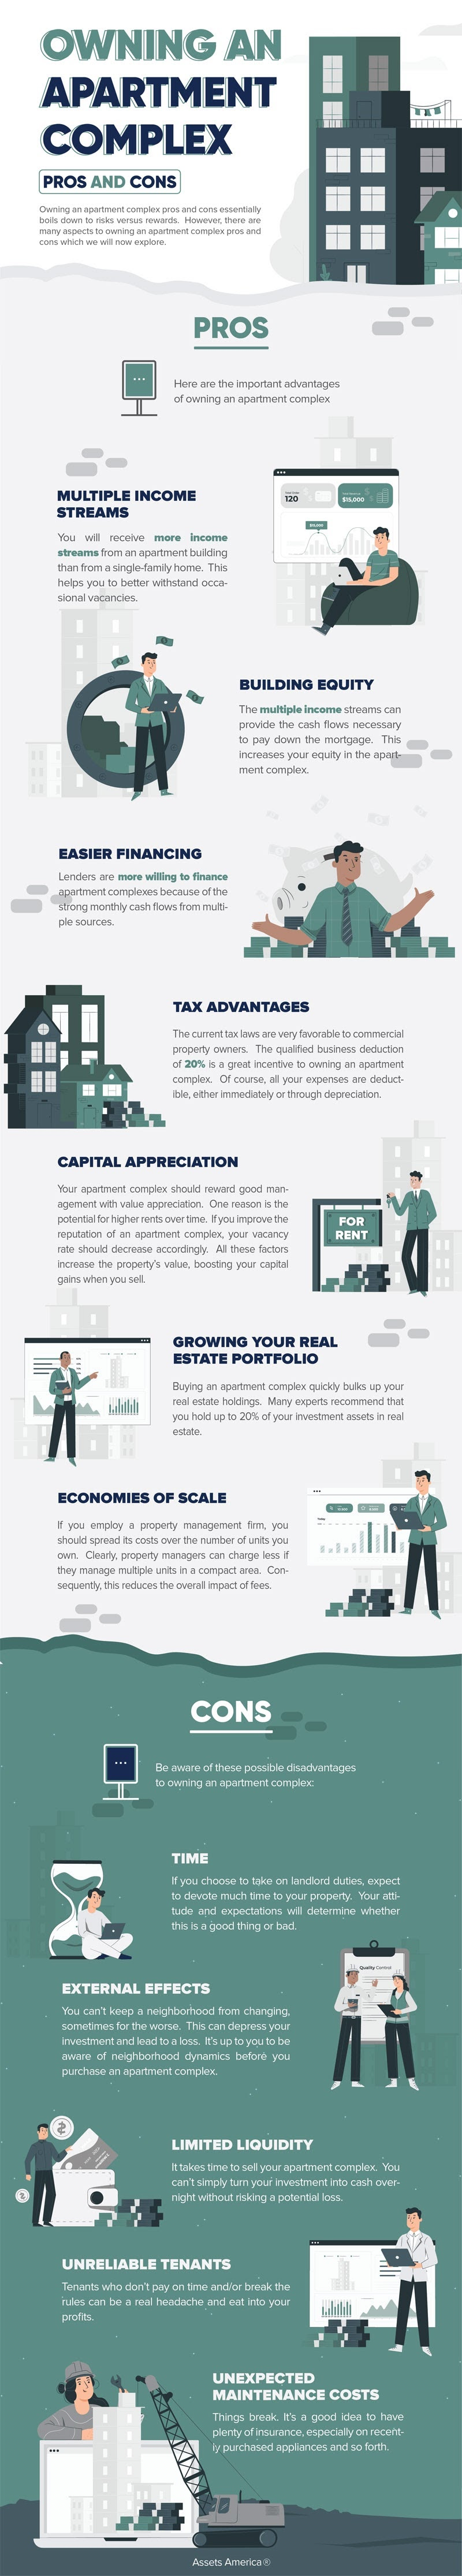 Owning an Apartment Complex Profitability, Pros & Cons #infographic